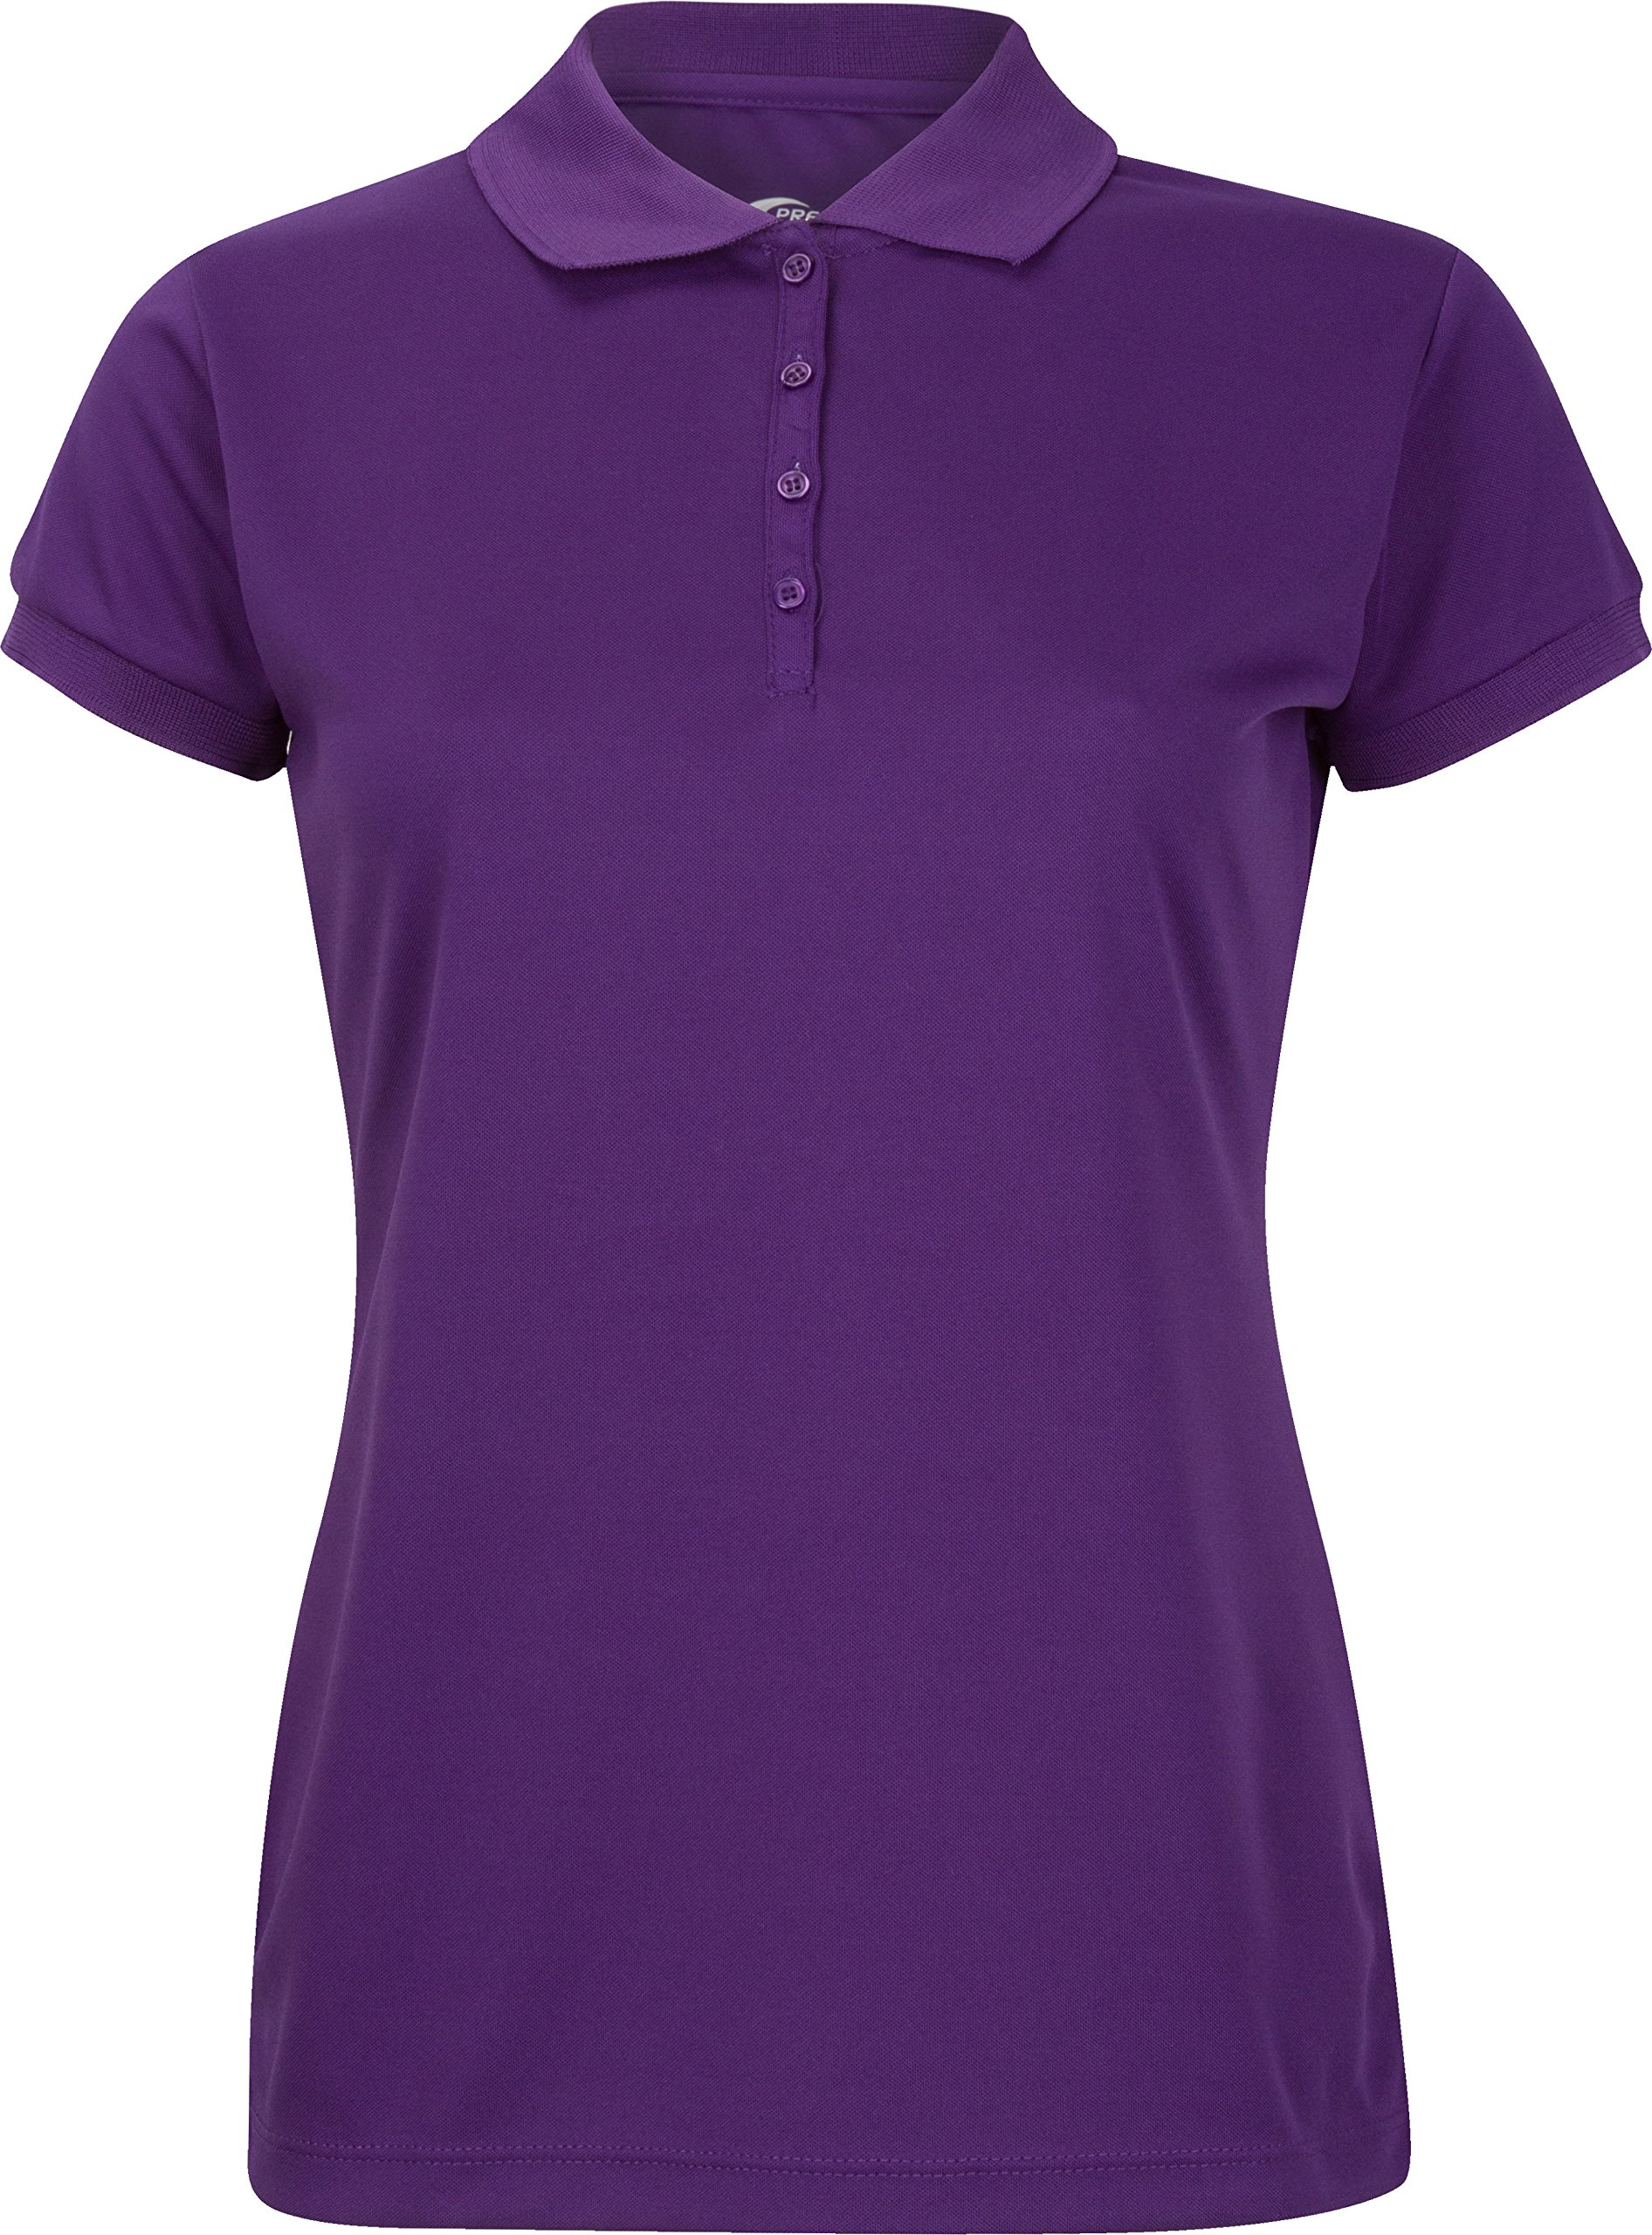 Premium Polo T-Shirt For Junior Girls – High-Performance Moisture Wicking Fabric